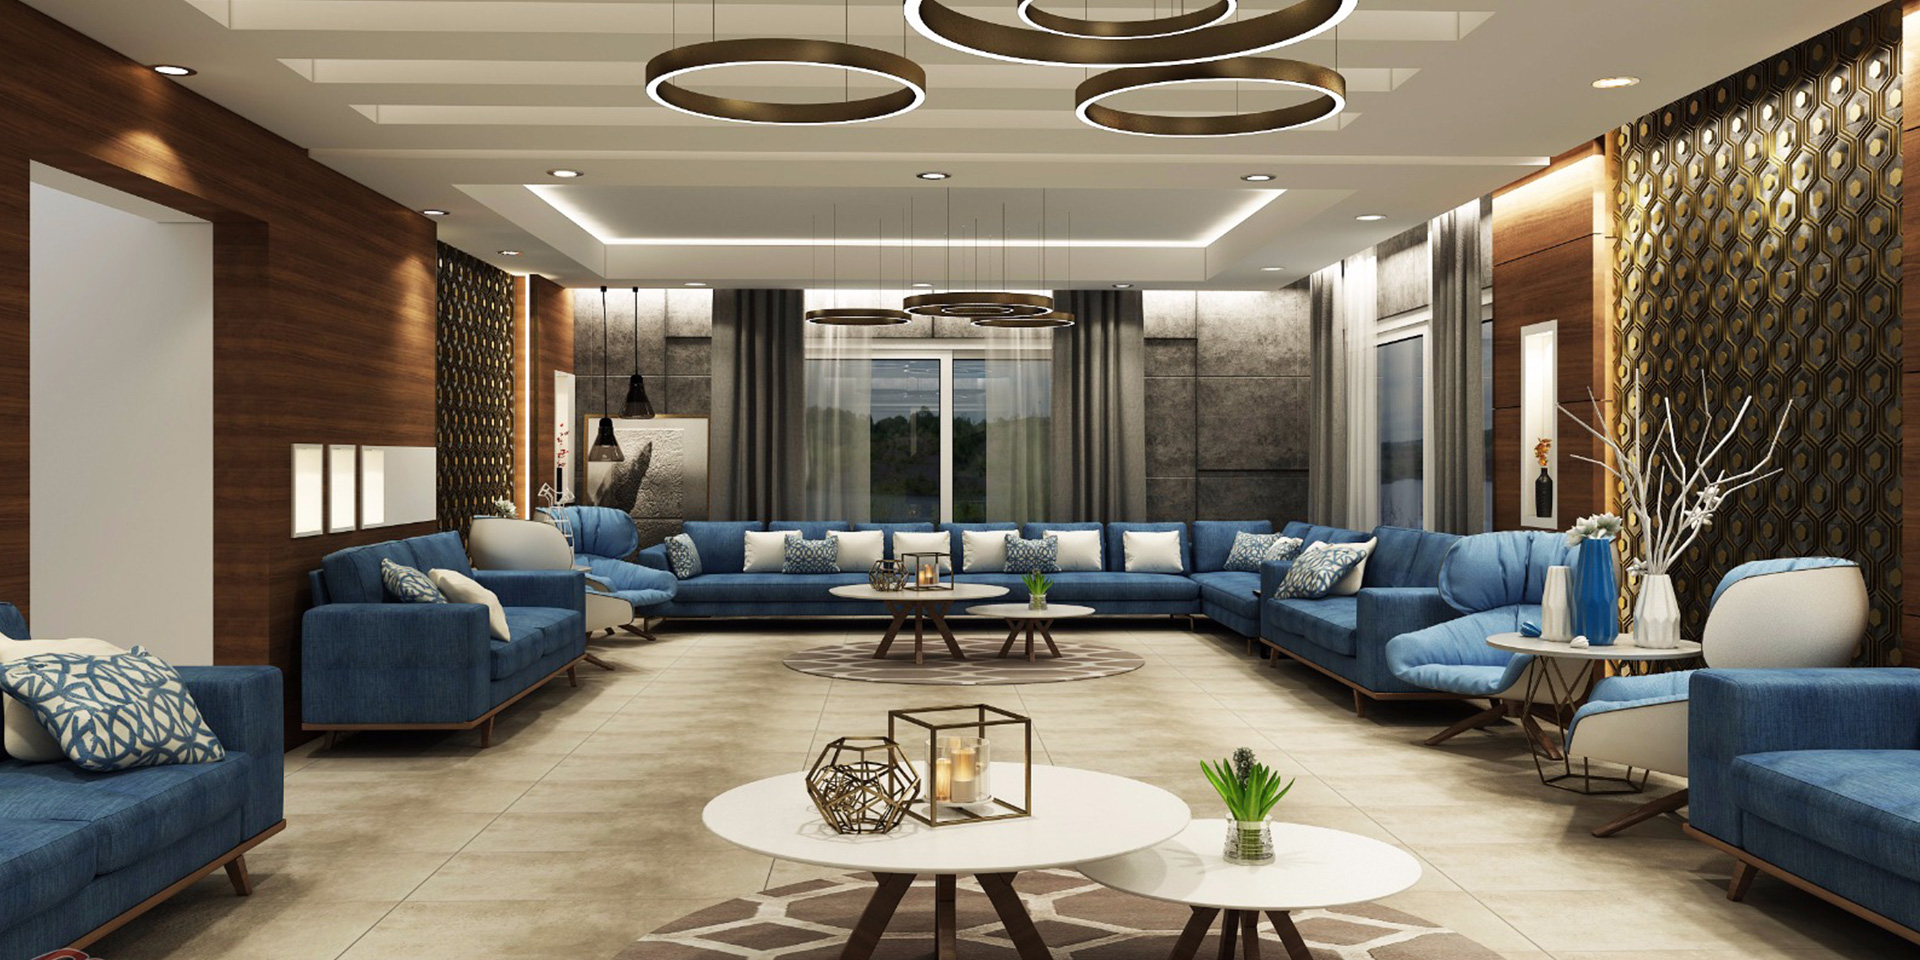 Top 10 interior design companies in dubai uae Top interior design companies in the world